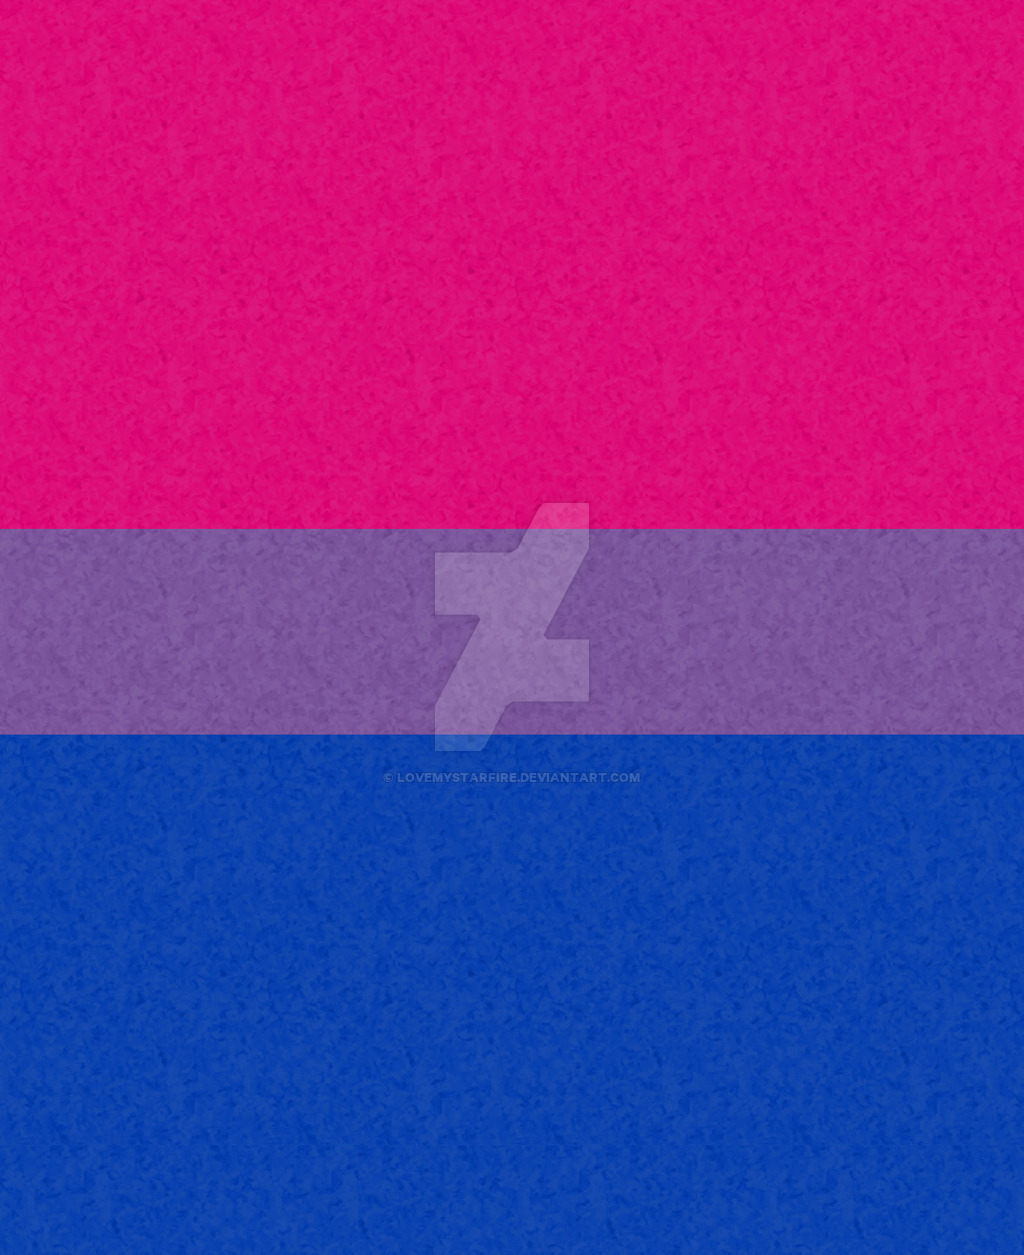 Bisexual Pride Flag Backgrounds, Compatible - PC, Mobile, Gadgets| 1024x1255 px